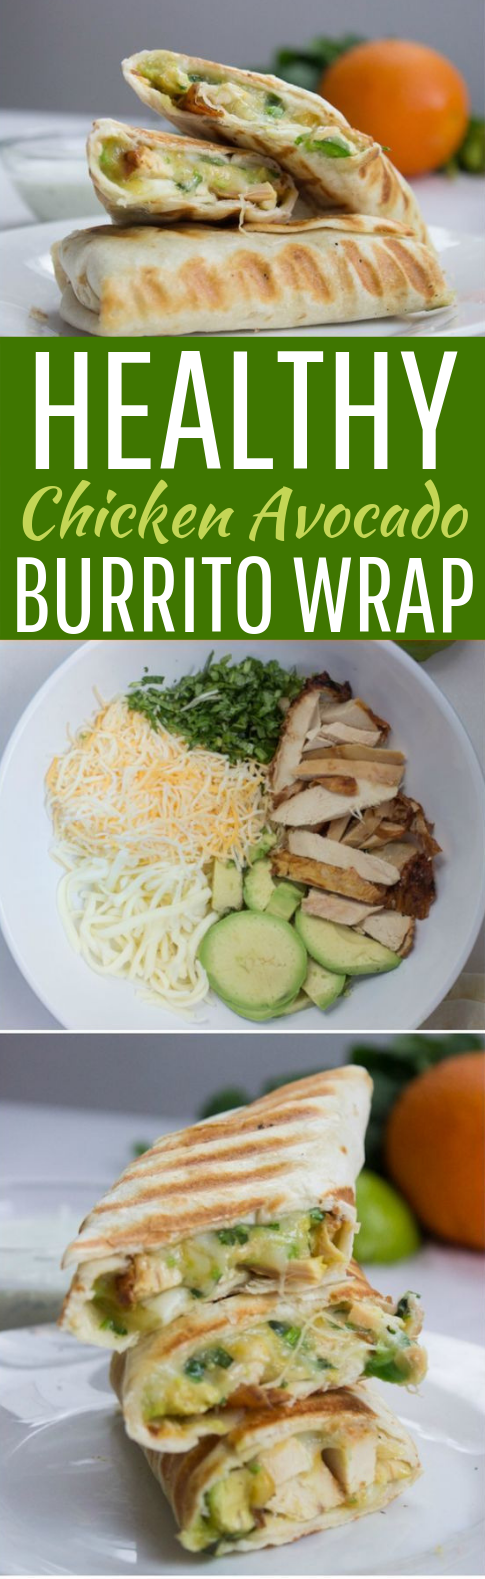 Quick and Easy Chicken Avocado Burritos #dinner #lunch